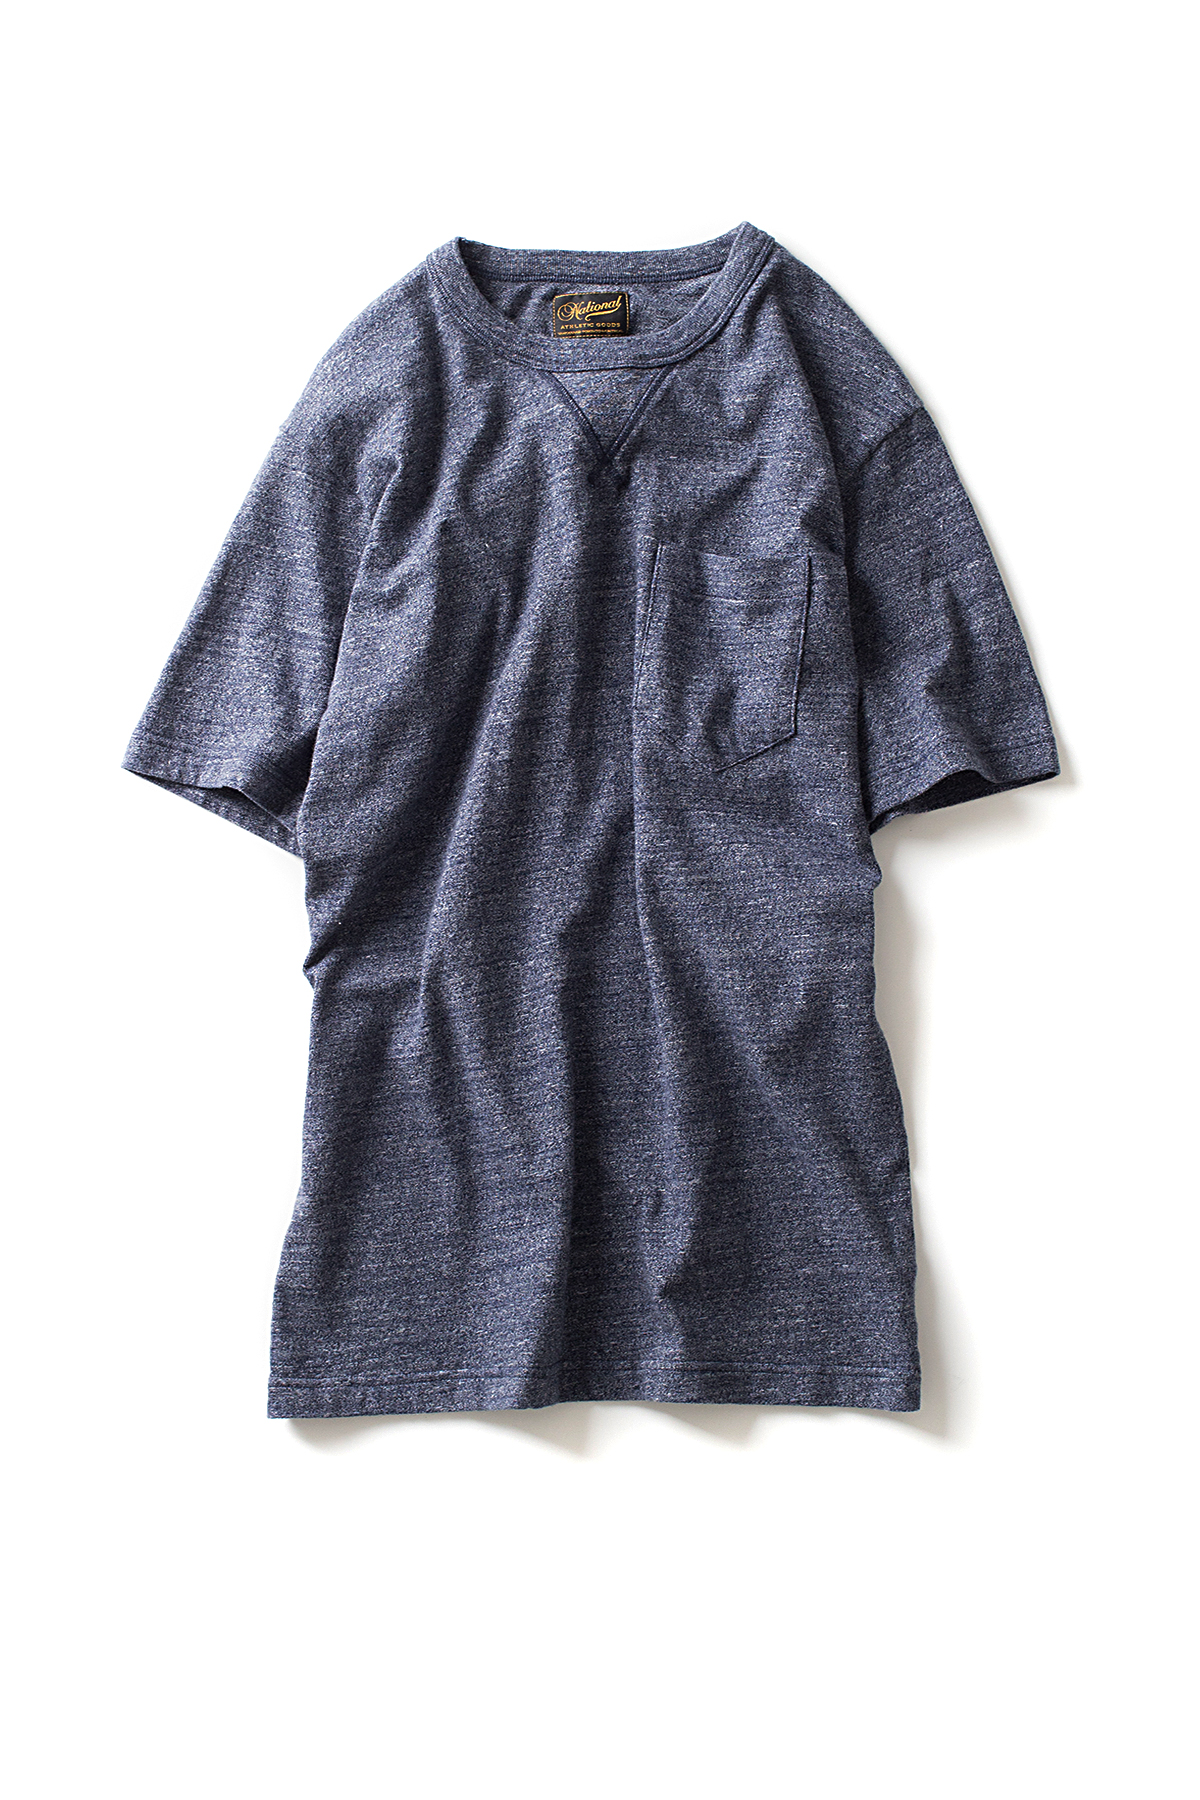 NAG : V Pocket Tee (Navy)